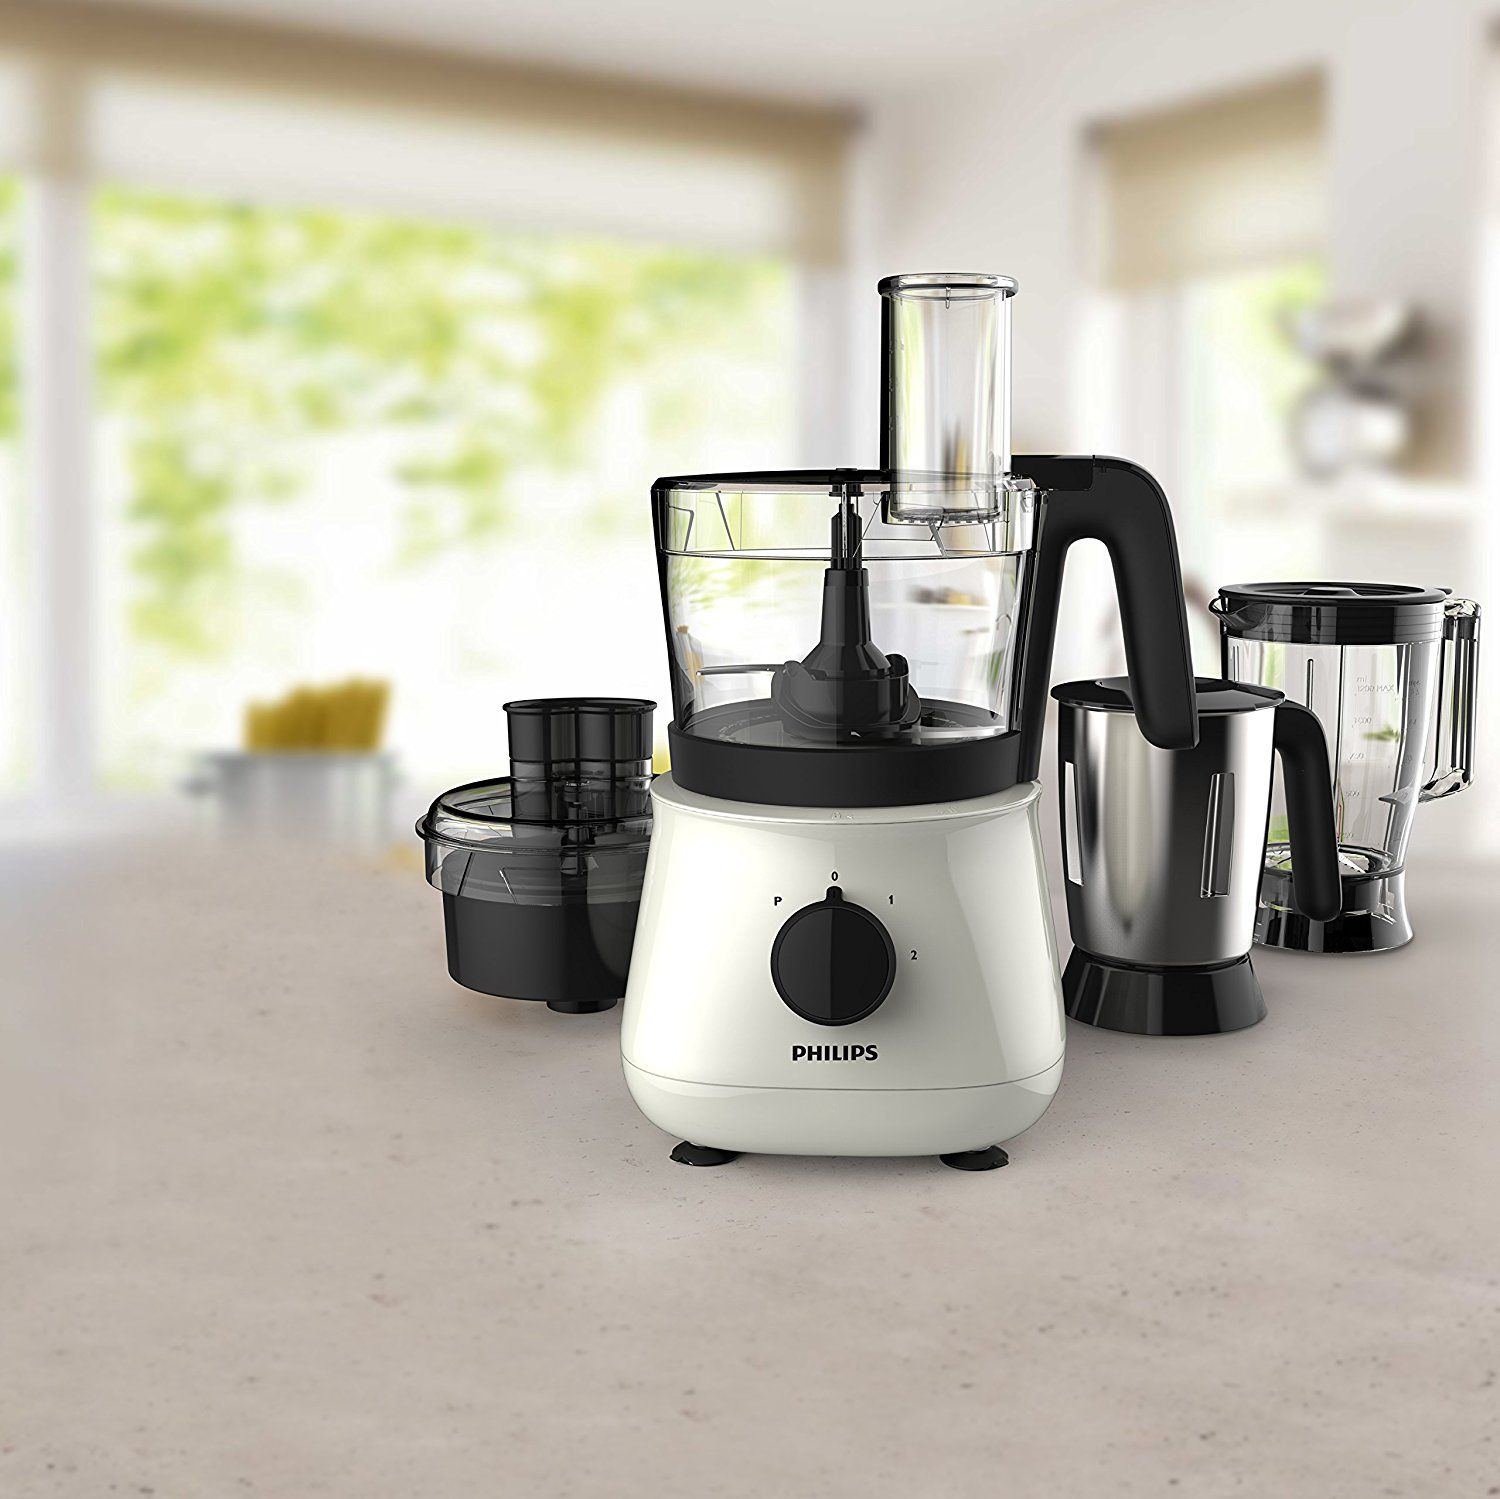 Philips Food Processor HL1660 700W At Rs 7229 Lowest Price ...